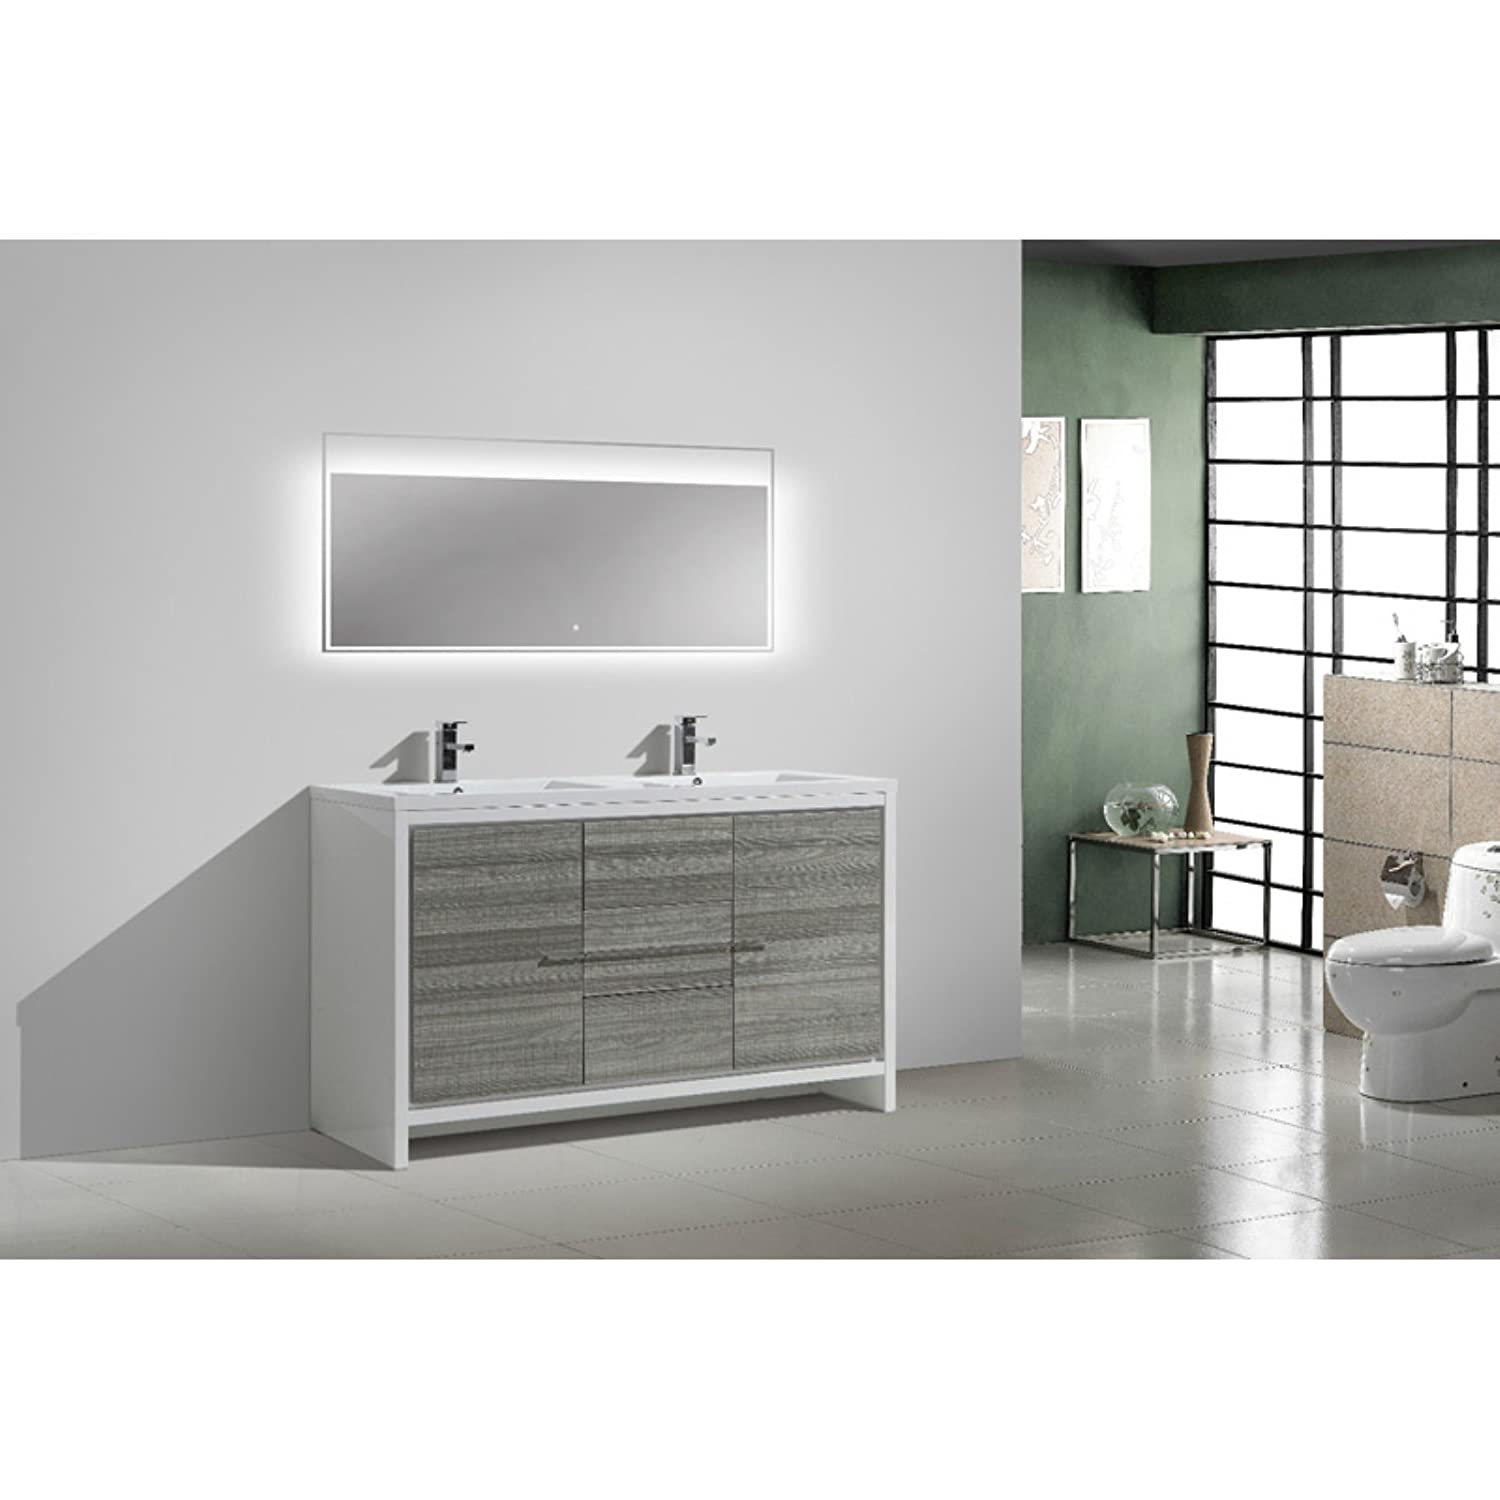 free standing double sink bathroom vanity with 2 doors and 3 drawers home kitchen - Bathroom Cabinets Kzn